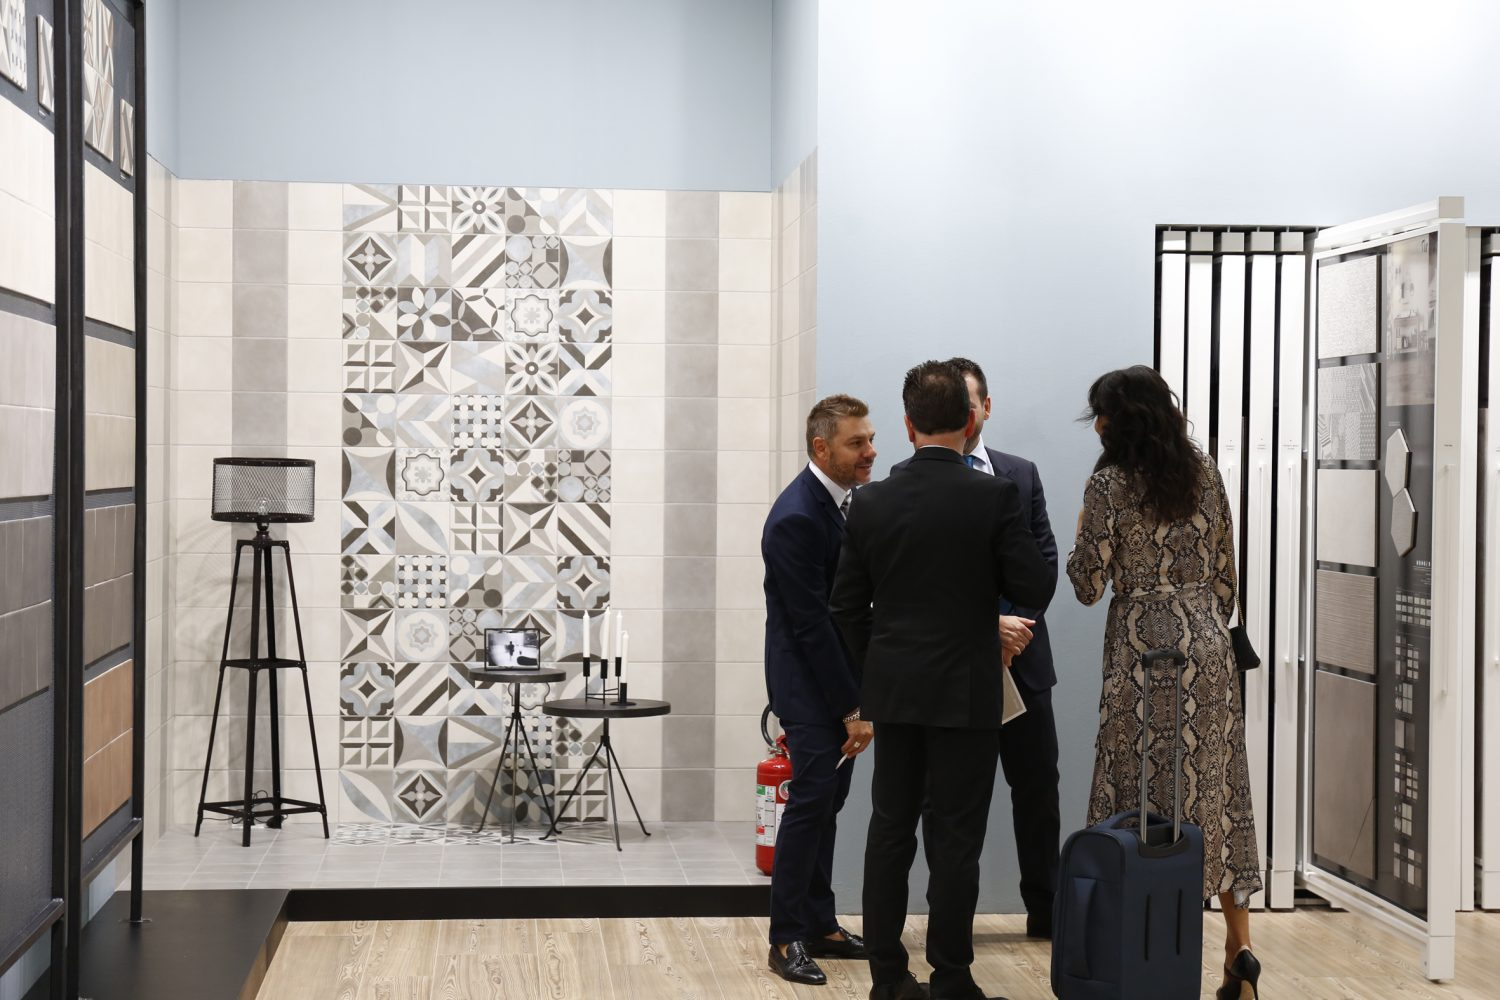 cersaie 2019 Cersaie 2019: The Highlights Of Day One Cersaie2018  92A5115